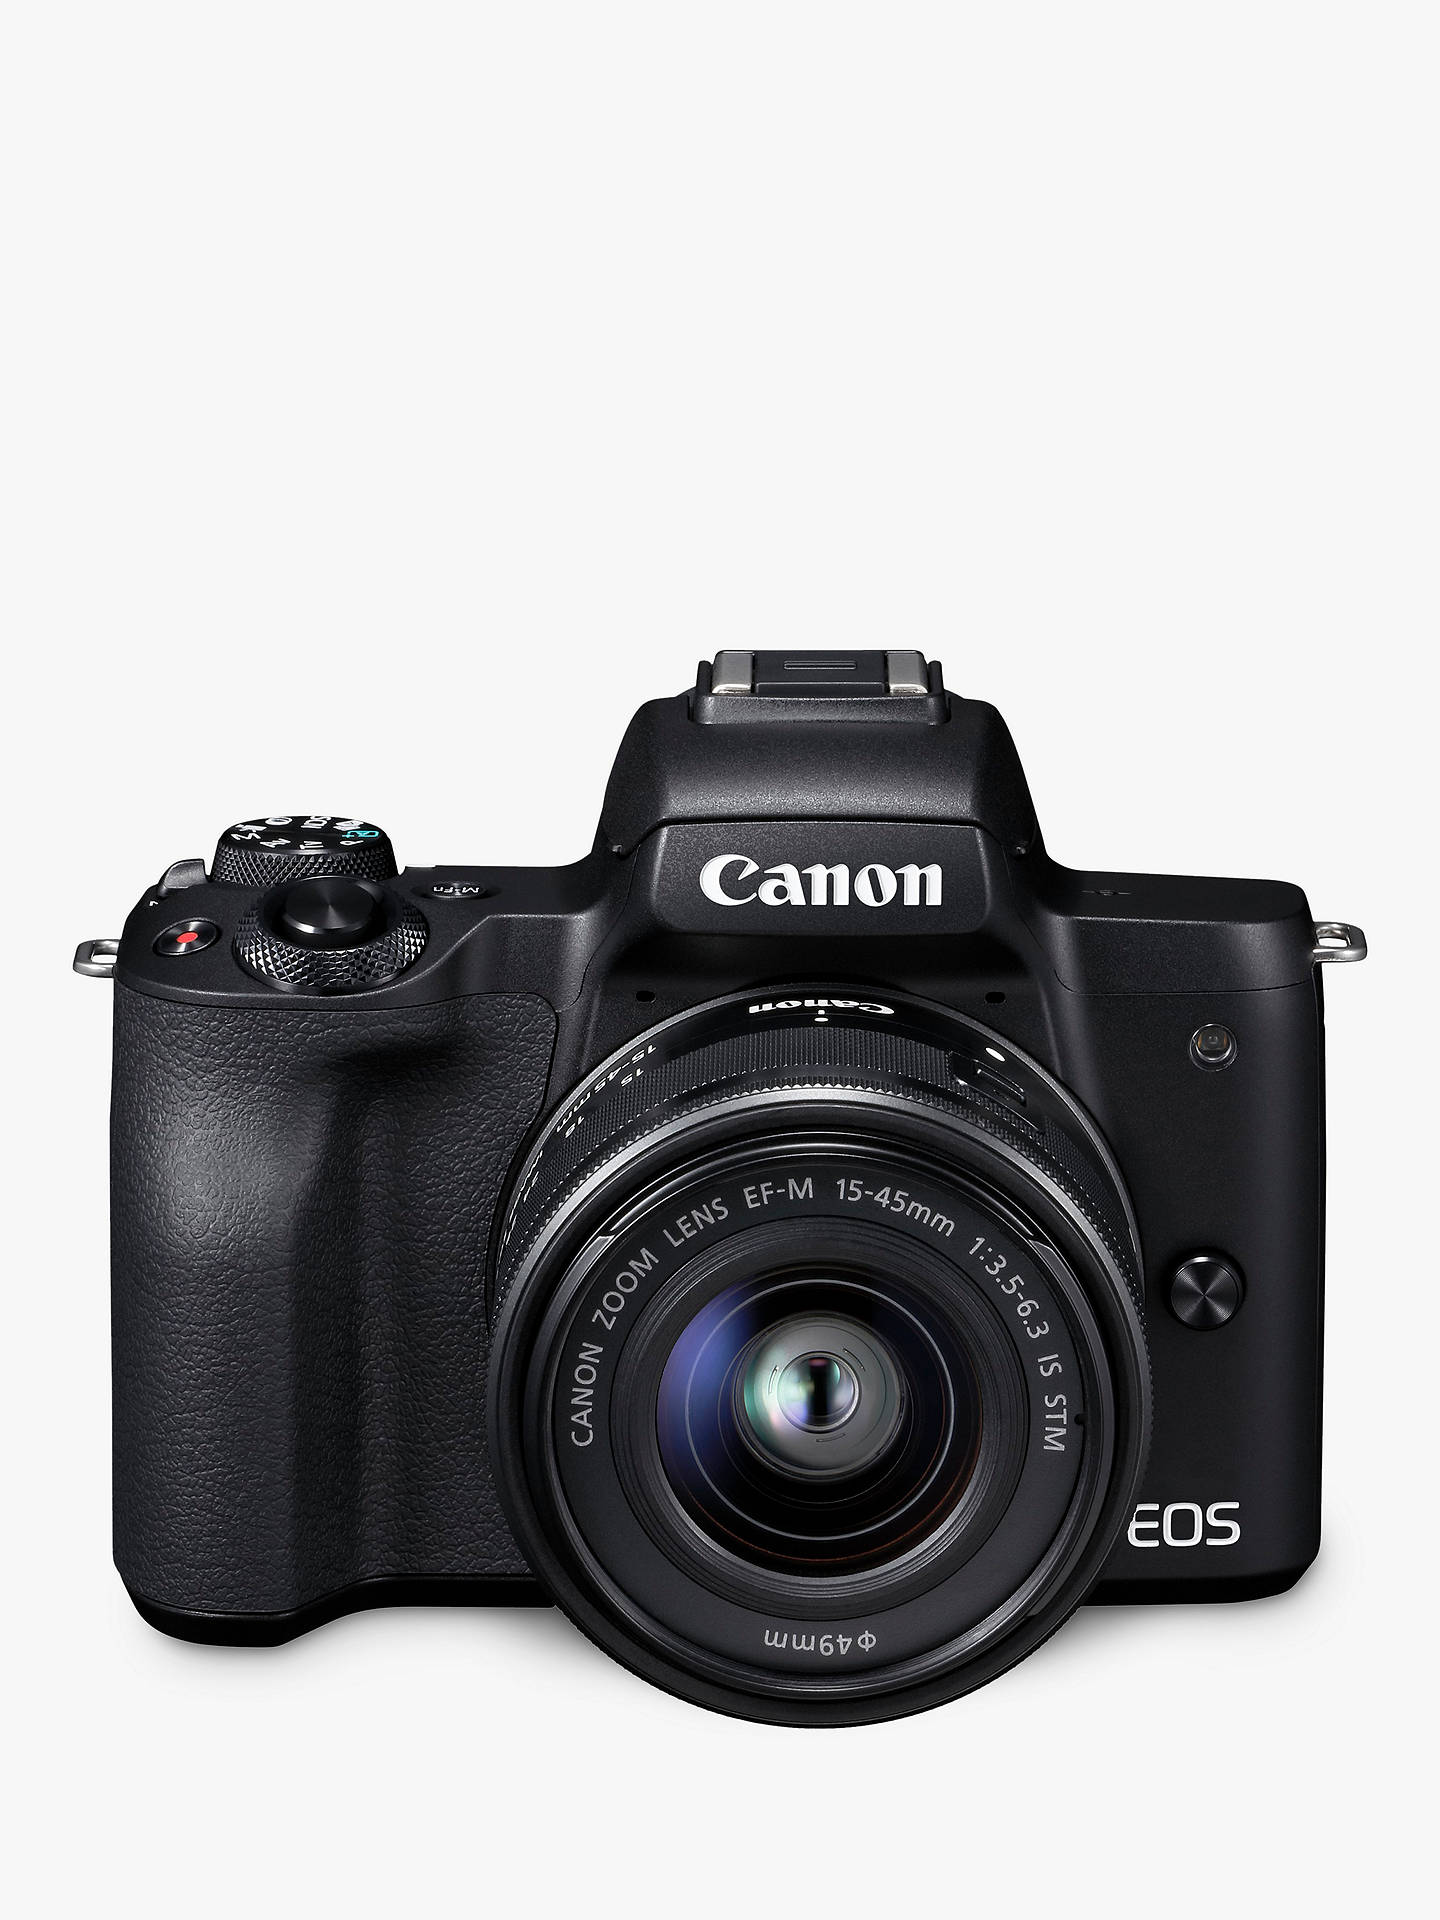 Canon EOS M50 Compact Camera with EF-M 15-45 mm f/3.5-6.3 IS STM Lens (Black)